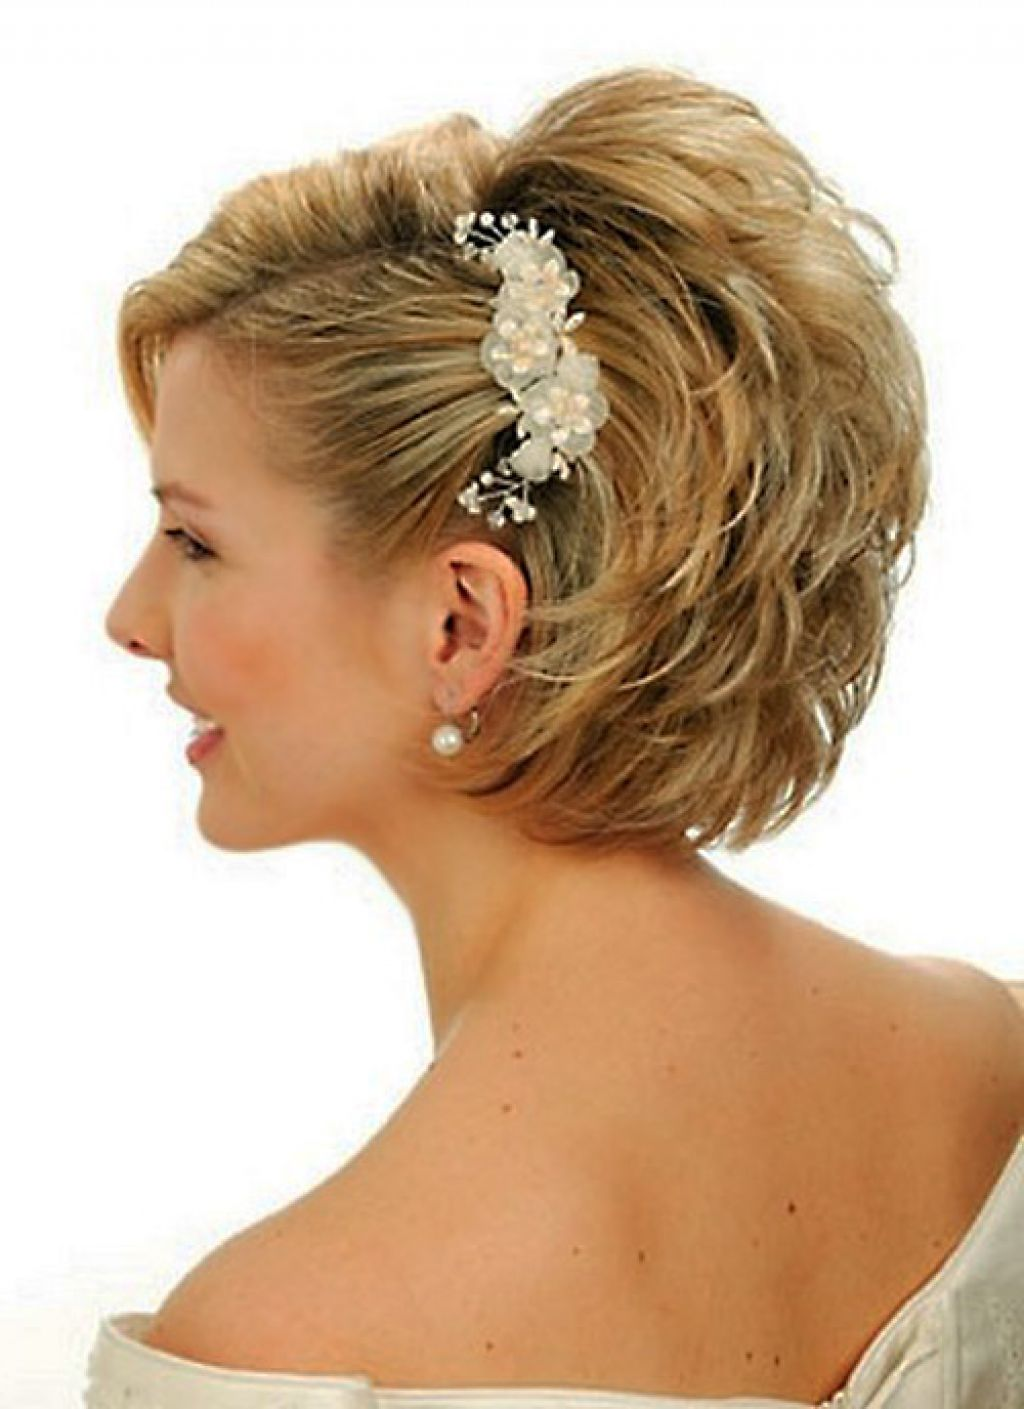 Wedding Hairstyles For Medium Hair With Bangs : Gallery for gt wedding hairstyles short hair with bangs